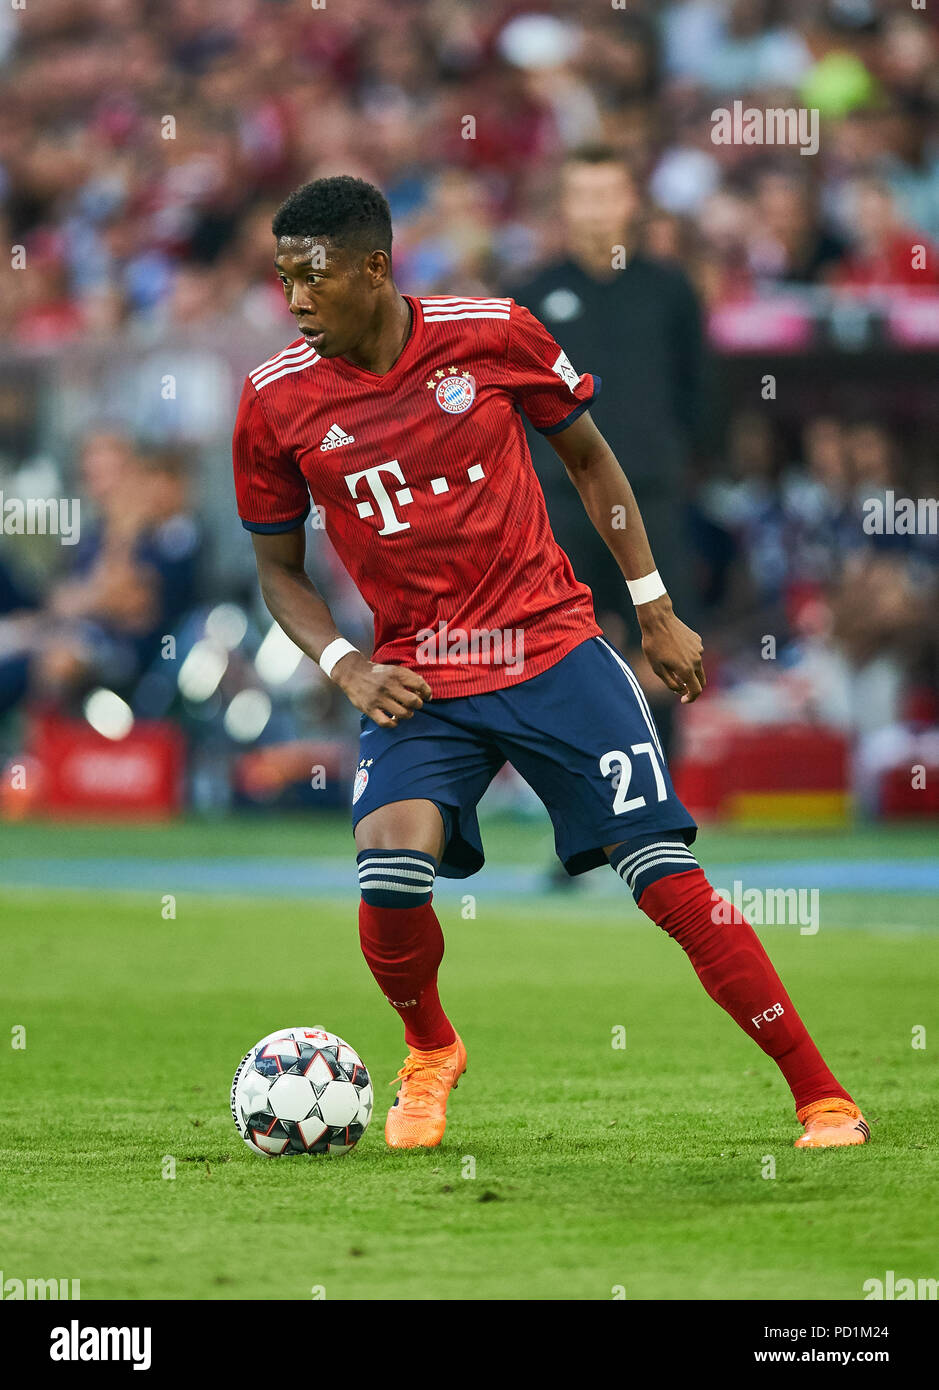 FC Bayern Munich - Manchester United, August 05, 2018 David ALABA, FCB 27  drives, controls the ball, action, full-size, Single action with ball, full  body, ...